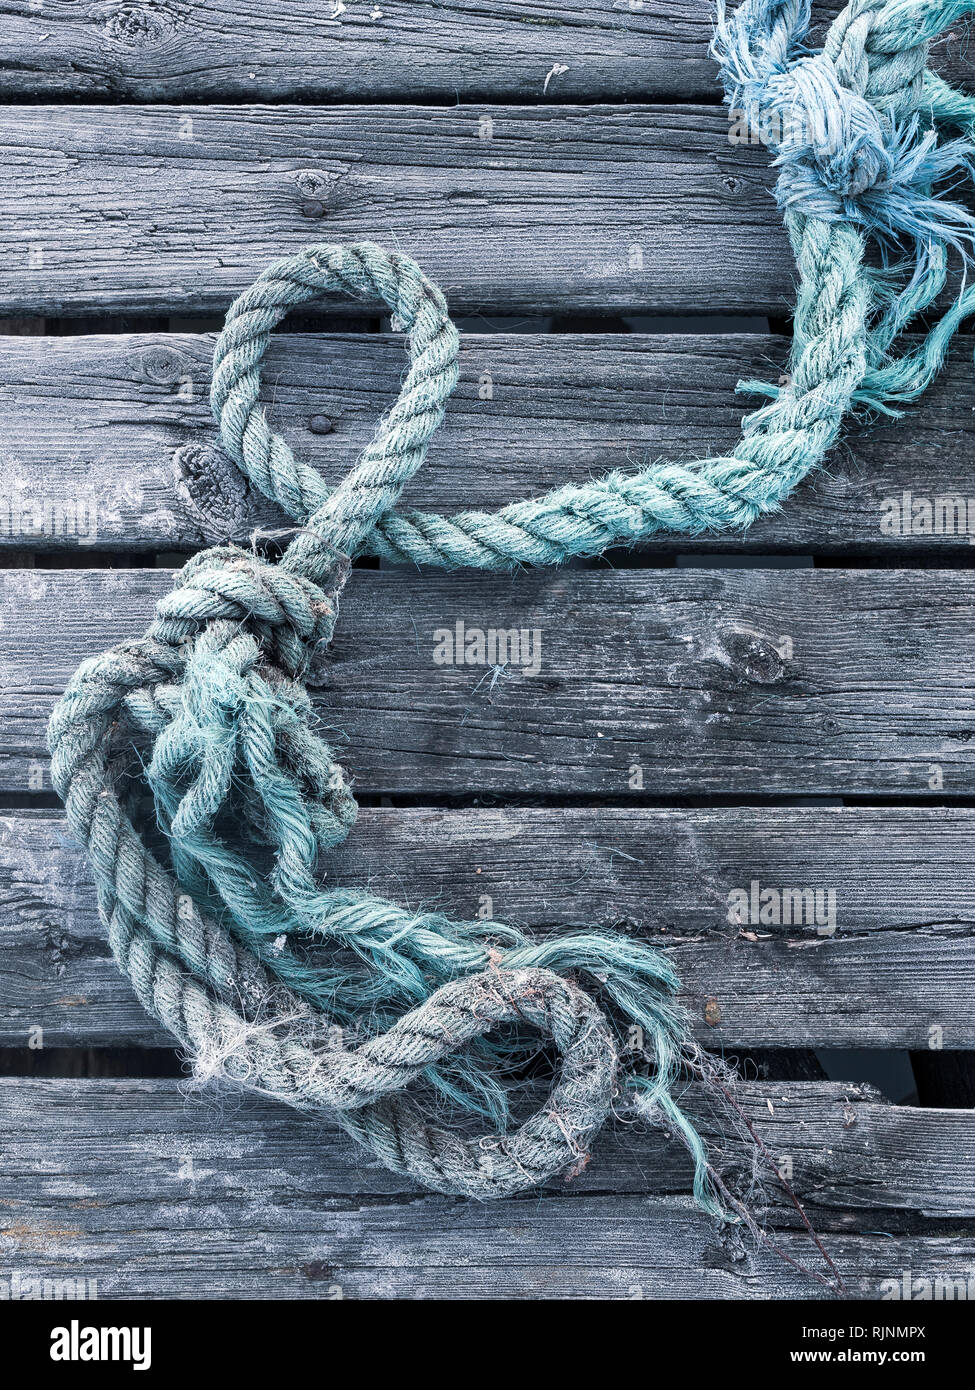 Blue rope on top of weathered wooden planks, full frame, close up - Stock Image